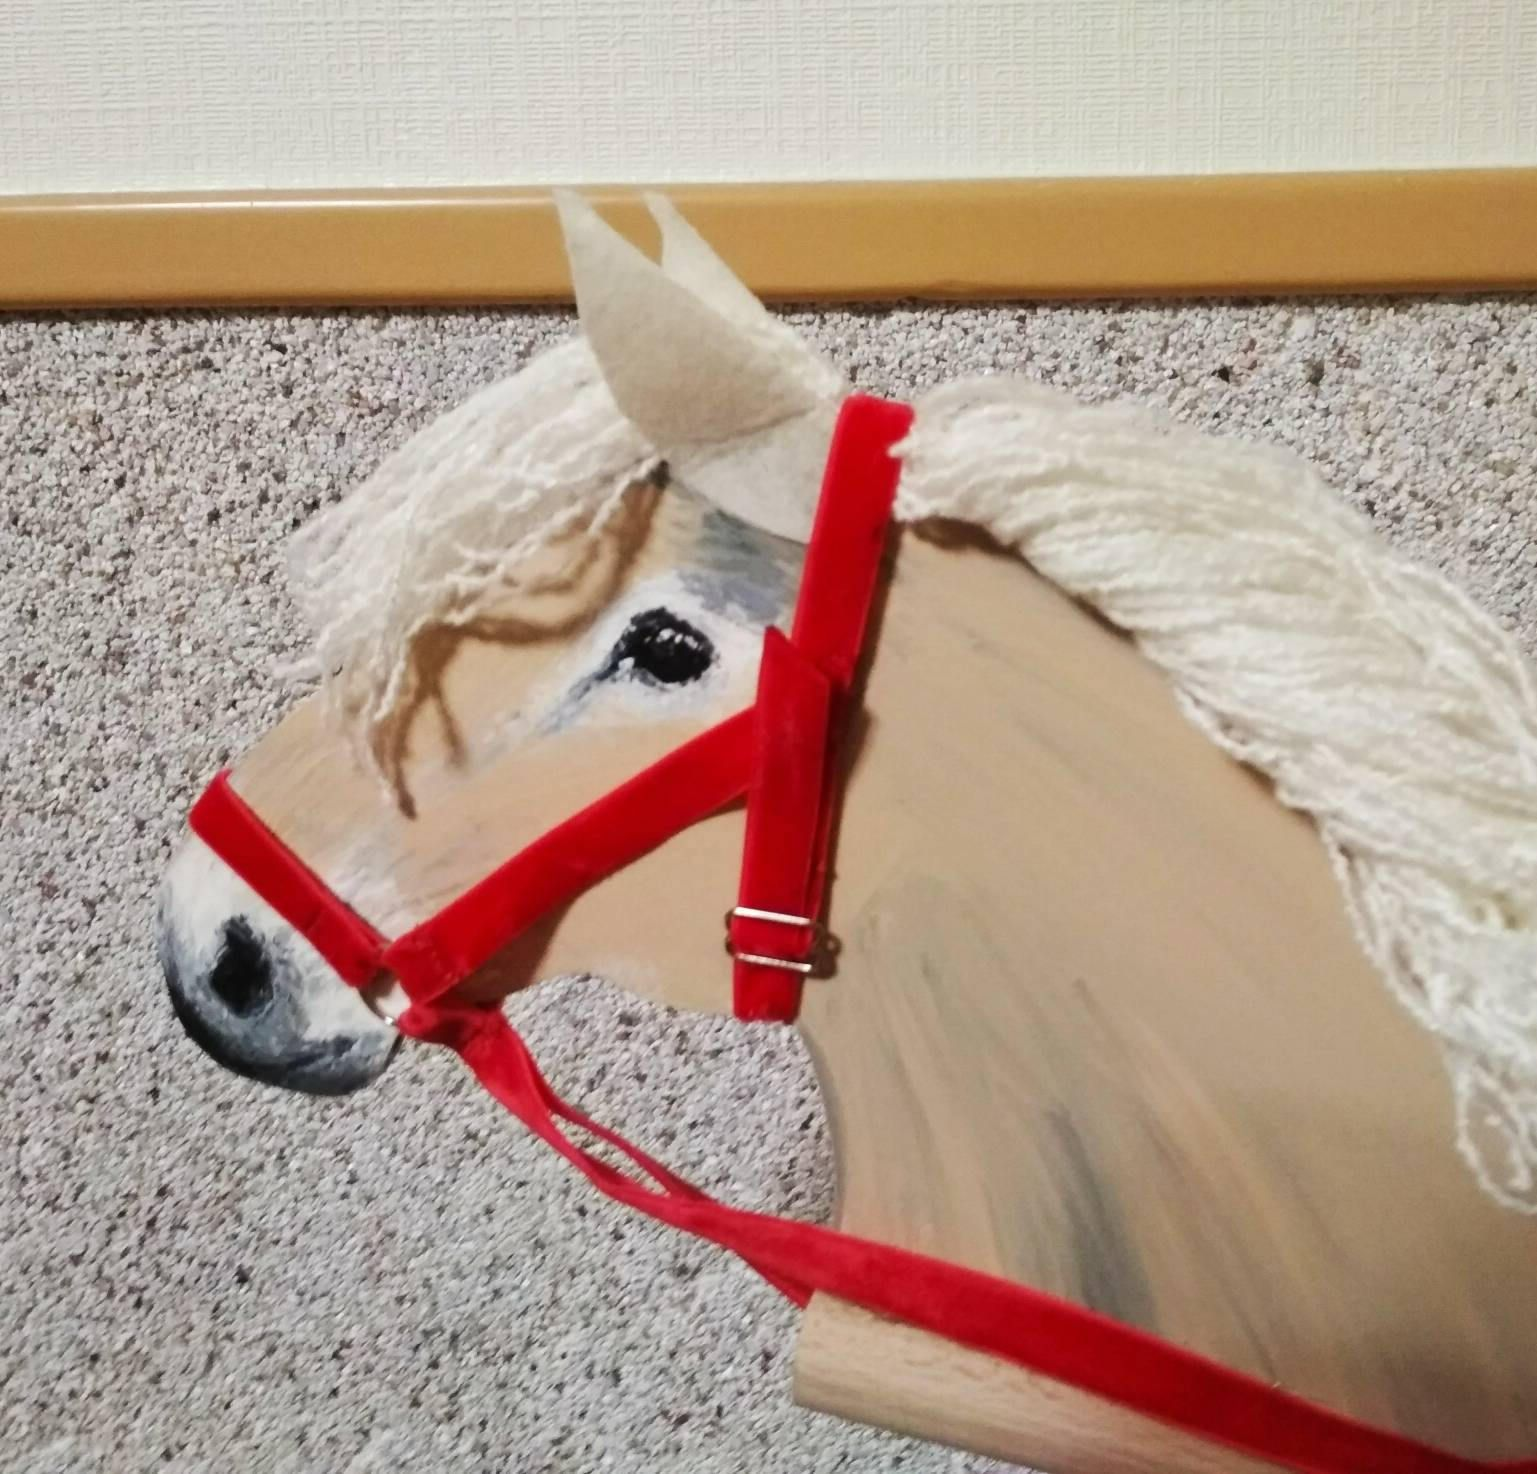 Stick horse toy wooden toy easter gift granddaughter gift hobby stick horse toy wooden toy easter gift granddaughter gift hobby horse bridle horse lover gift active games rocking horse ride on stick toy negle Gallery